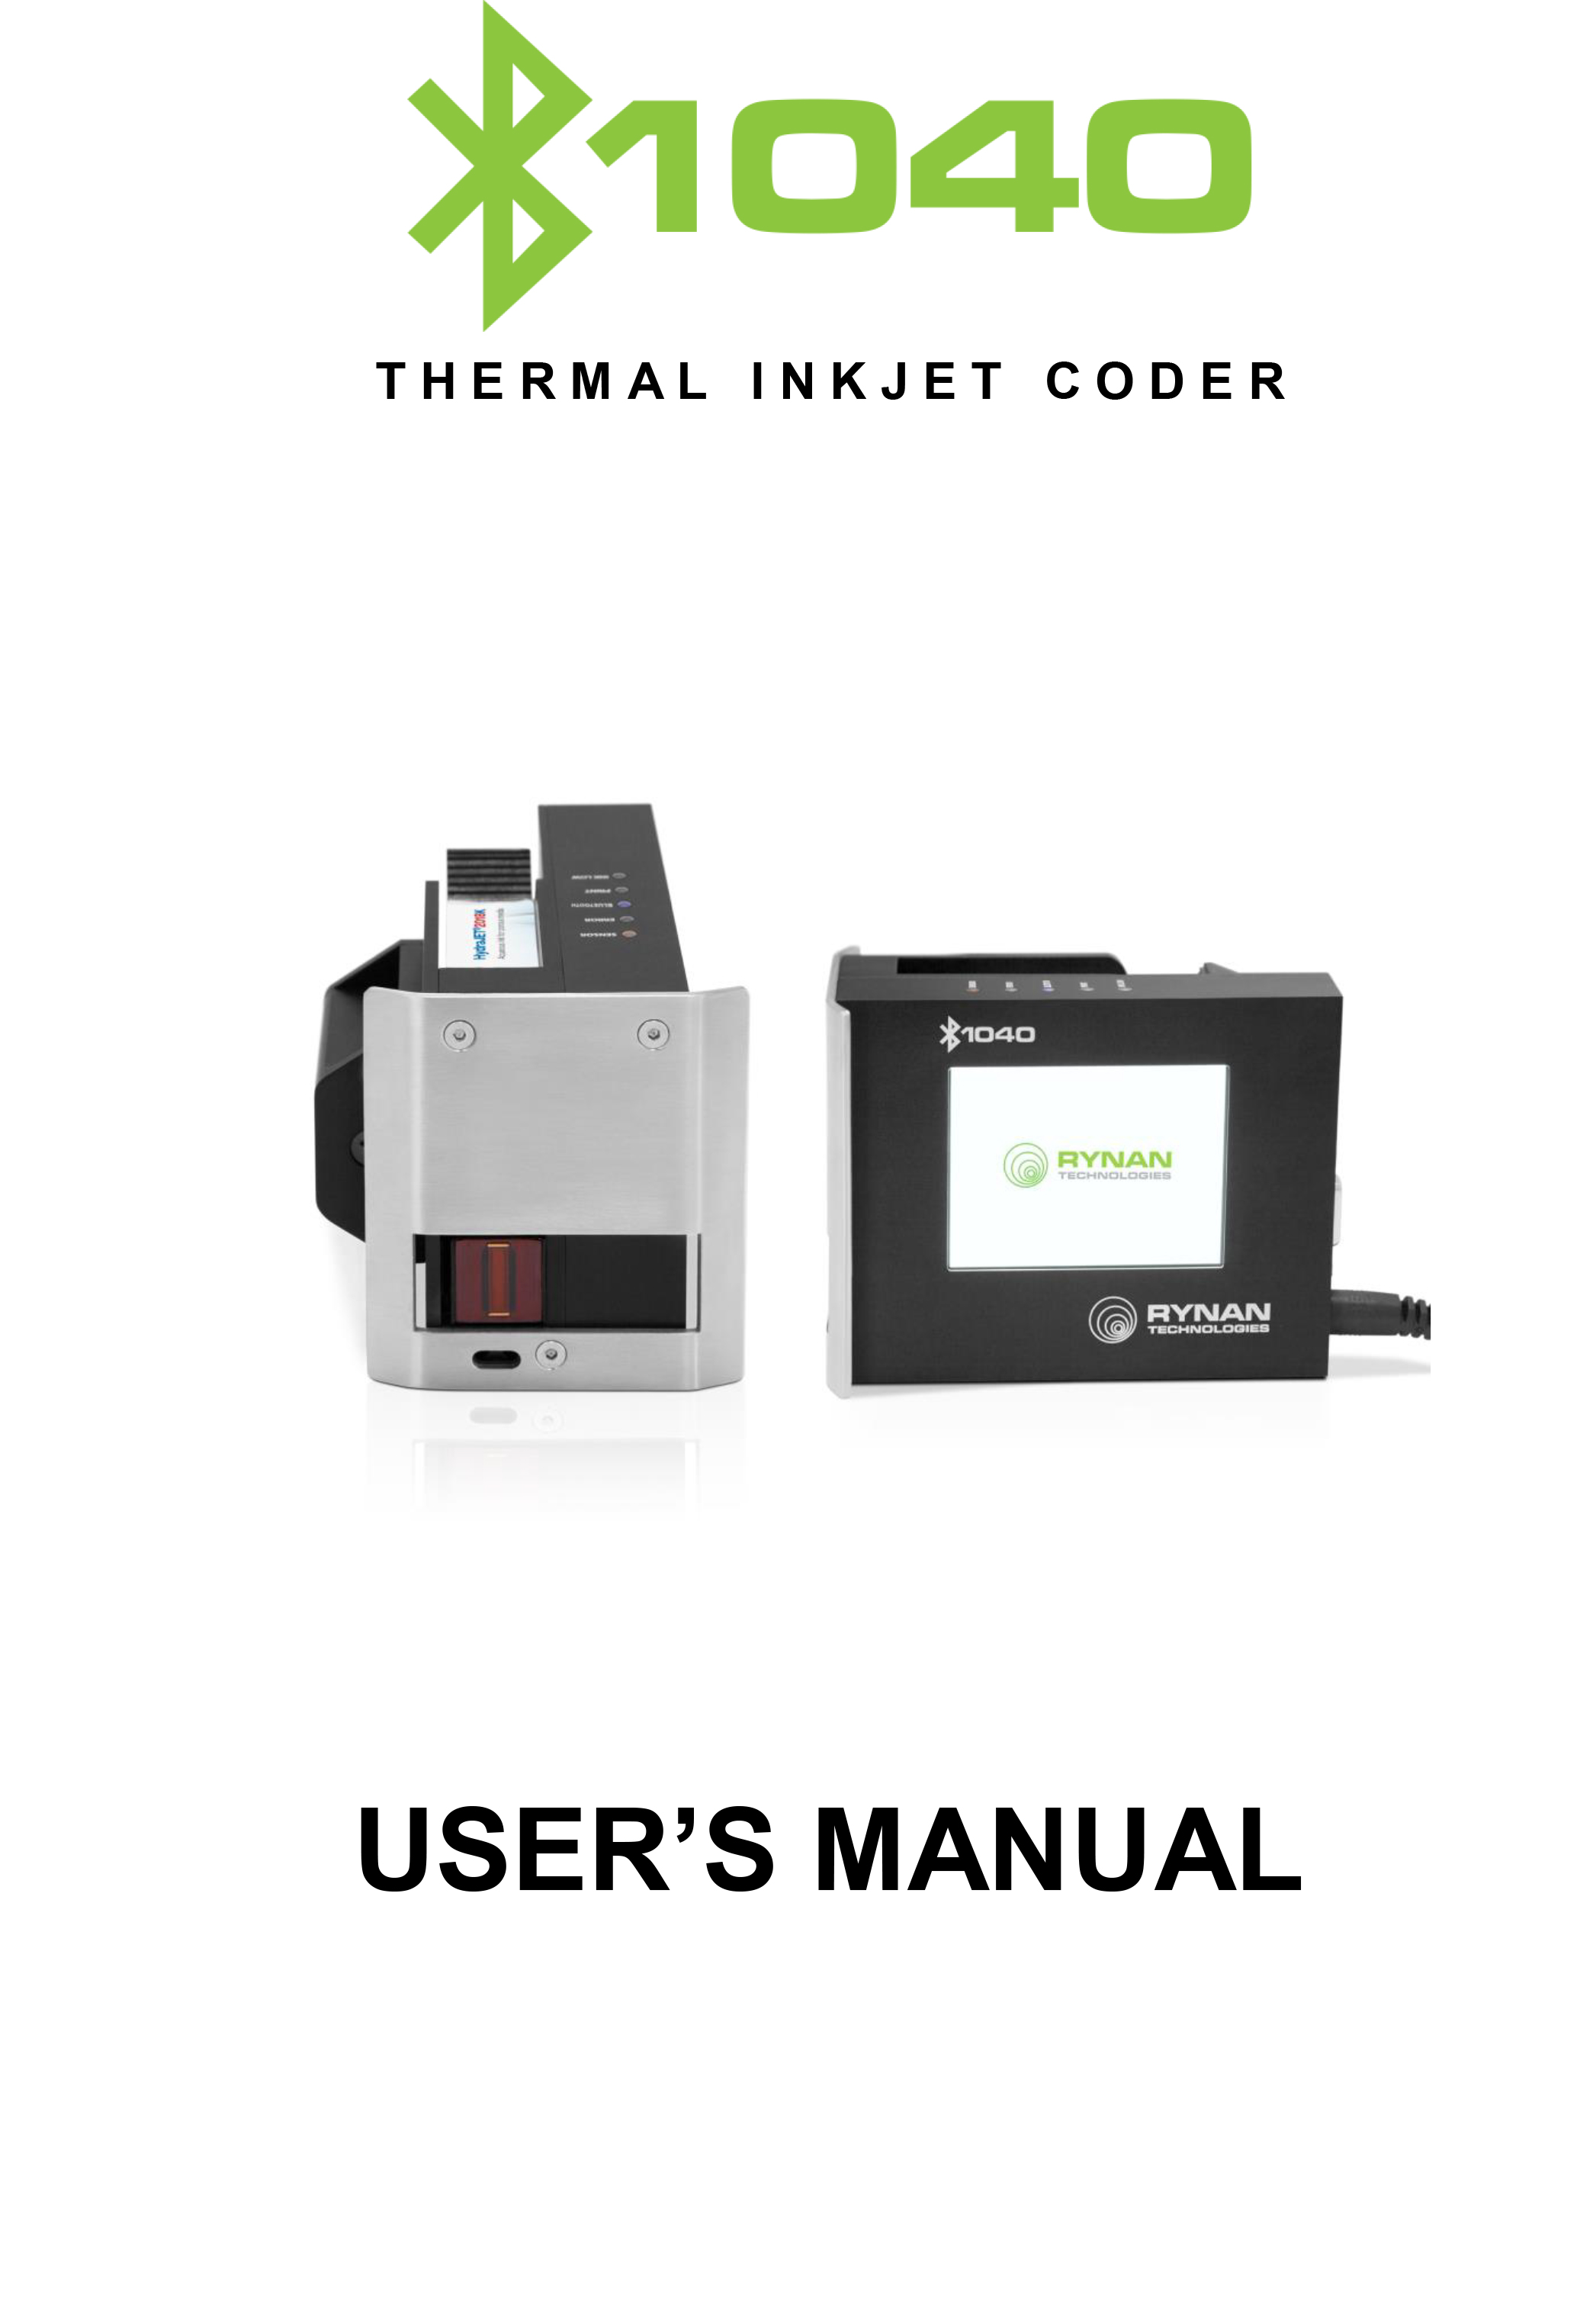 B1040 USER MANUAL v02 05Apr2016 1 - Product Manuals